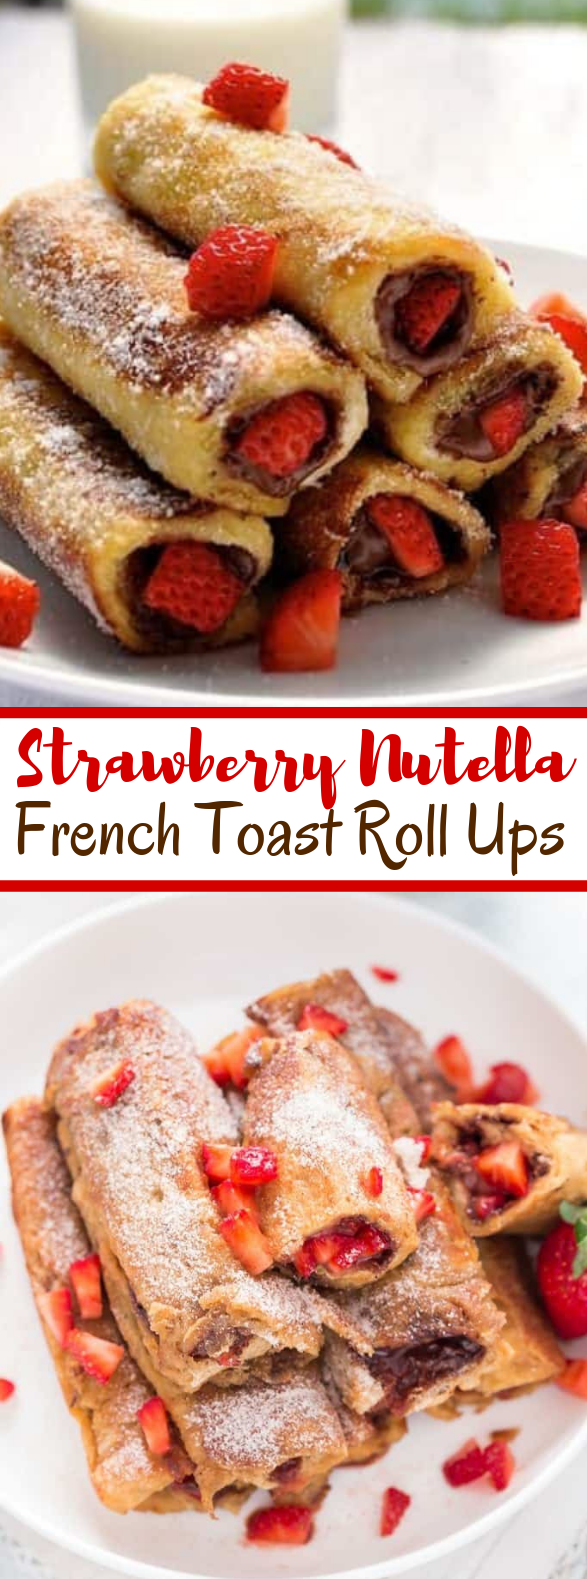 Strawberry Nutella French Toast Roll Ups #desserts #breakfast